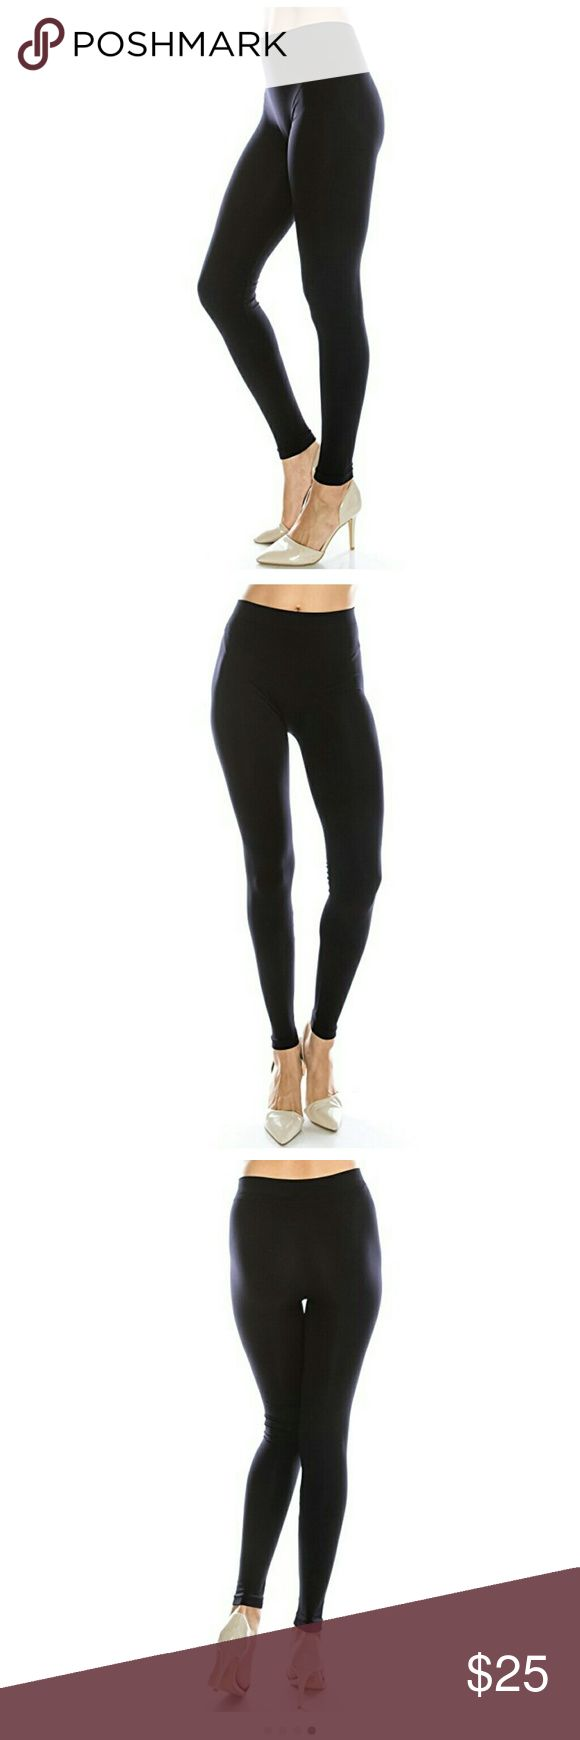 """NEW BLACK YOGA/ TIGHT LEGGINGS Brand NEW,OMG these are one of the most comfortable leggings ever. They are, so so soft and keeps their shape. These are actually yoga leggings, but you can use them as tight. They run true to size. I bought a small and a large thinking I wouldn't fit the small. But at 5'2"""" inches the small fits true to size. So I'm selling the large which is still in its original package. Here are the approximate measurement when it's not stretched. Size: (L) waist 28"""" length…"""